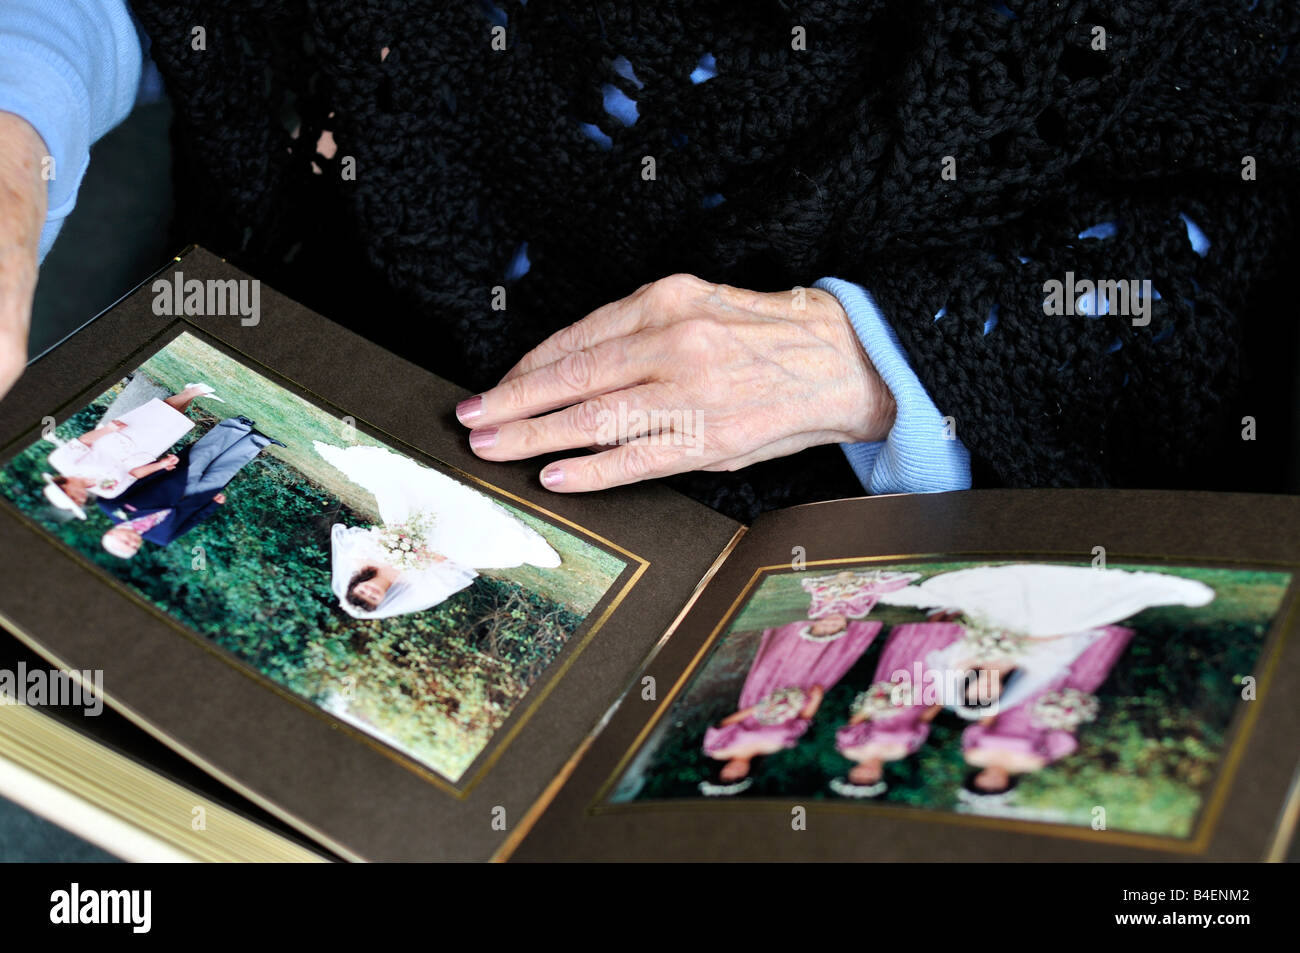 Elderly lady looking at a wedding album and reminiscing - Stock Image